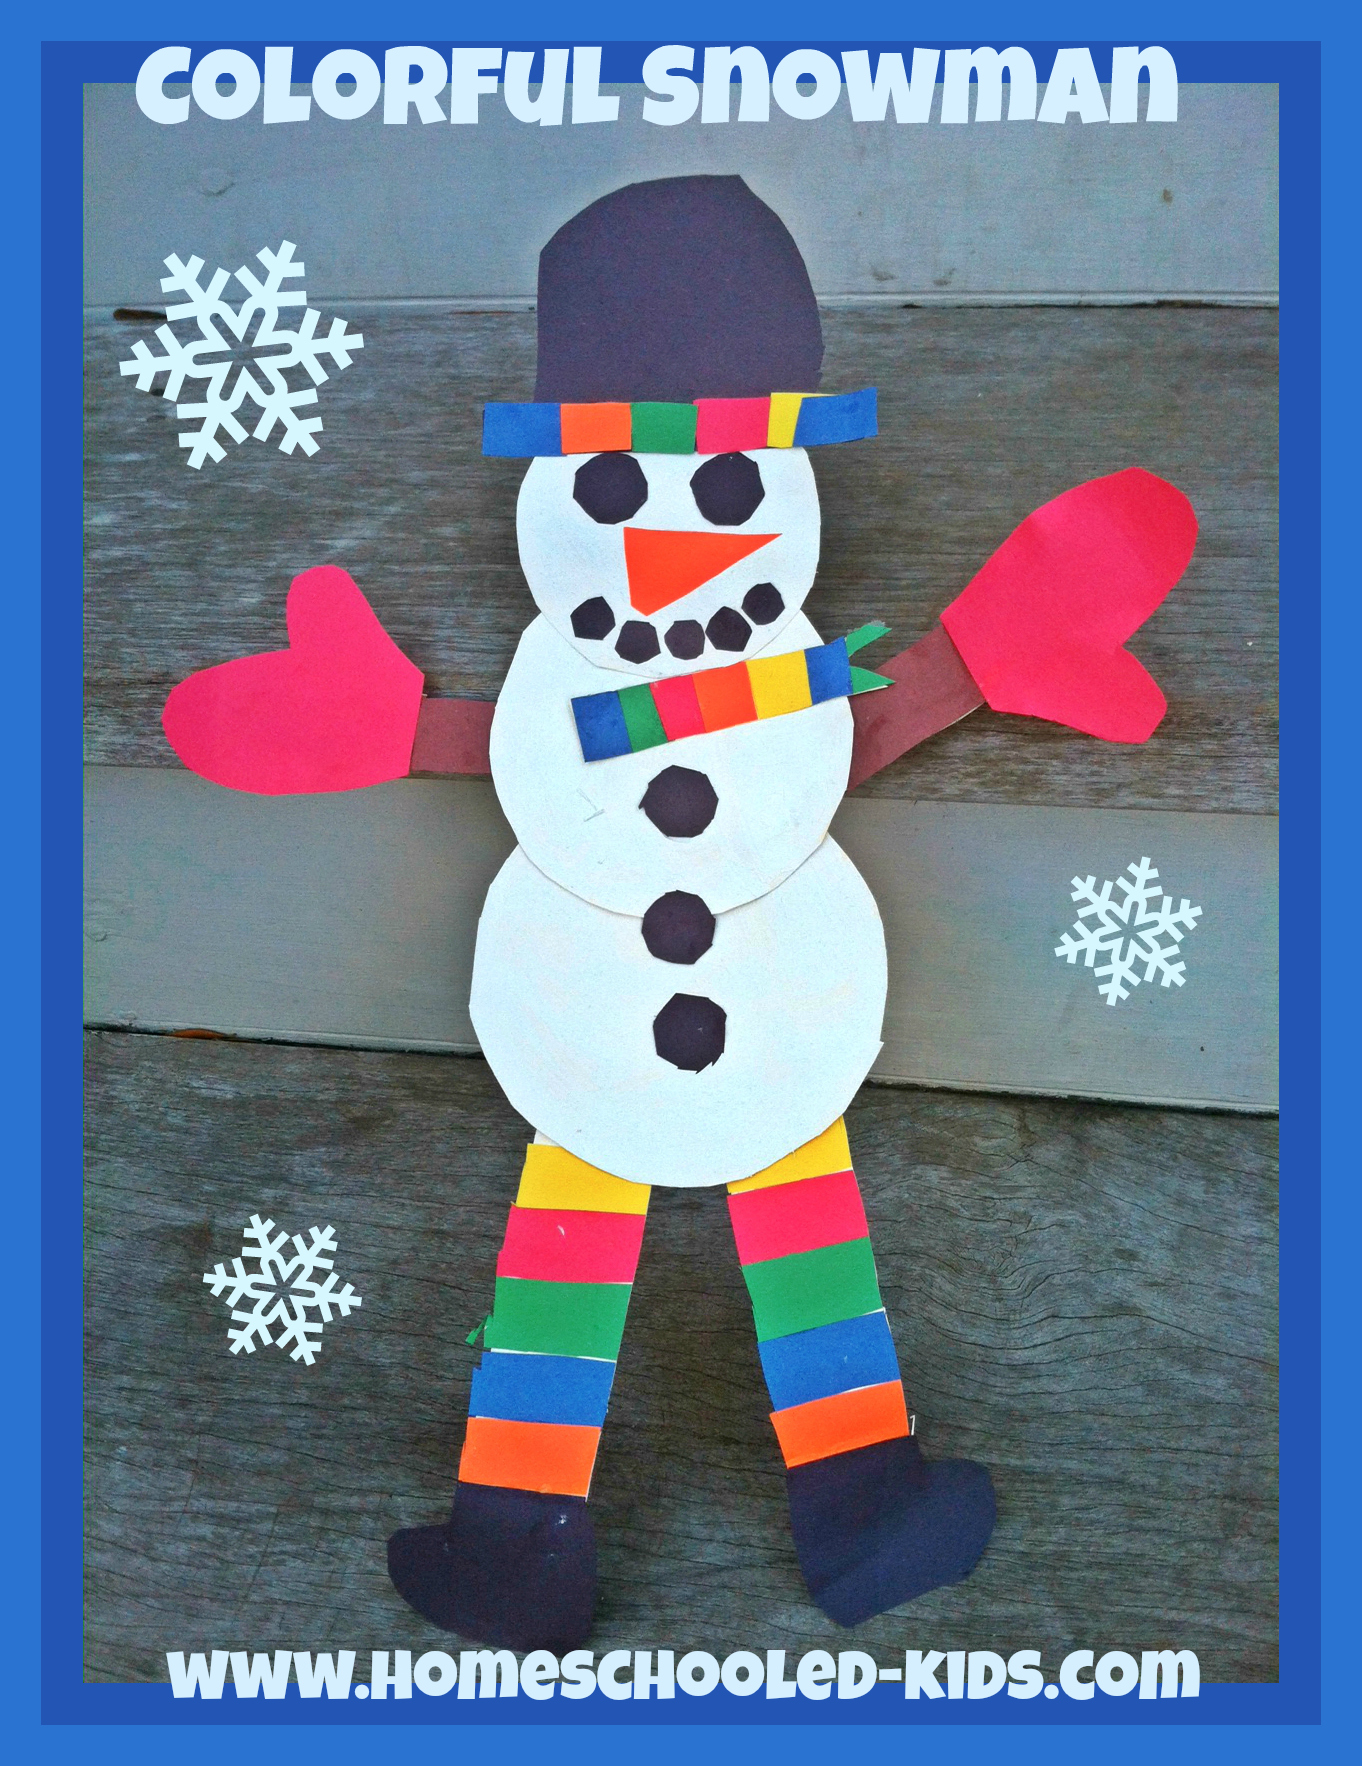 colorful snowman craft for kids homeschooled kids online